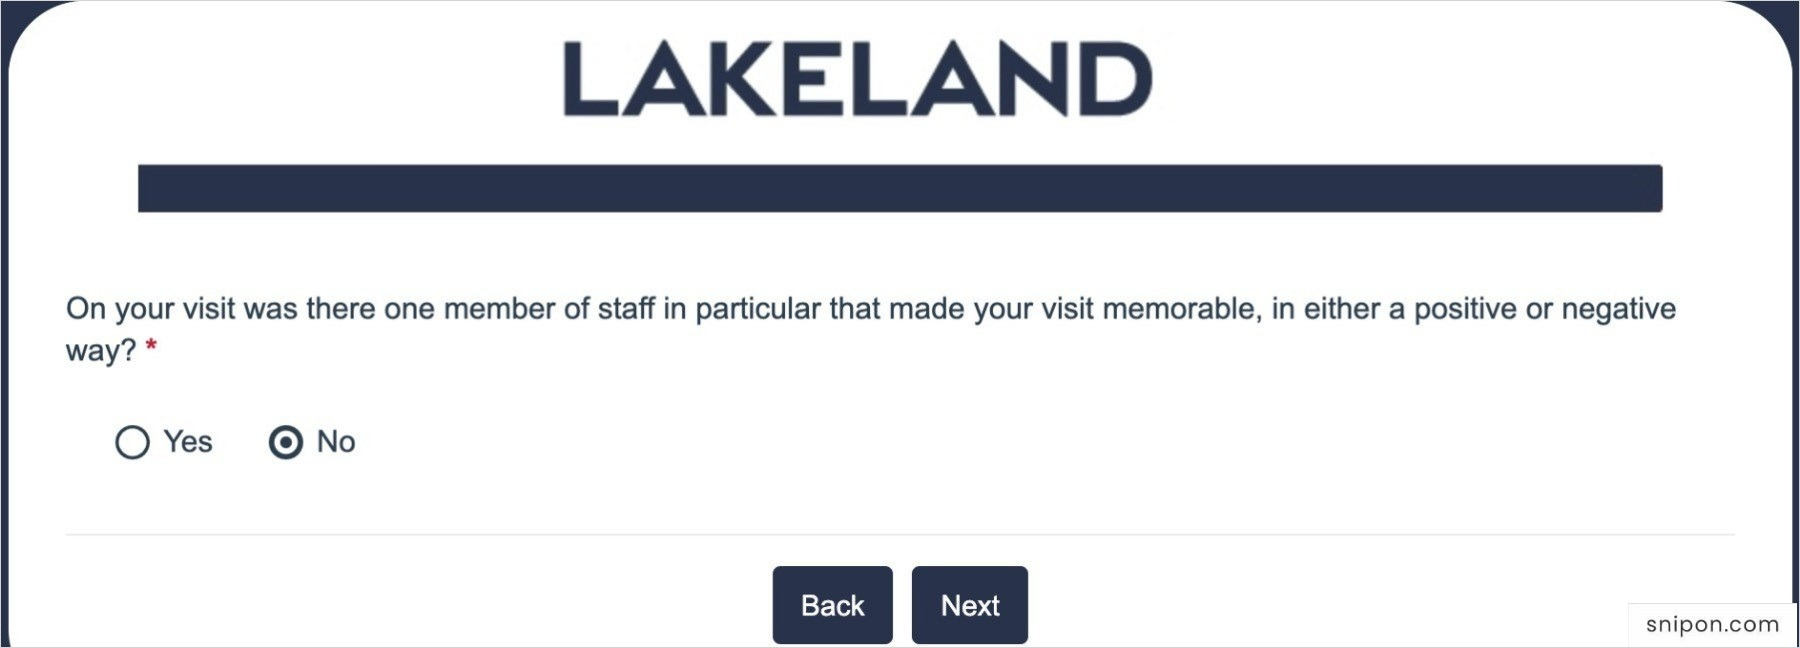 Did Any Member Made Your Visit Memorable?